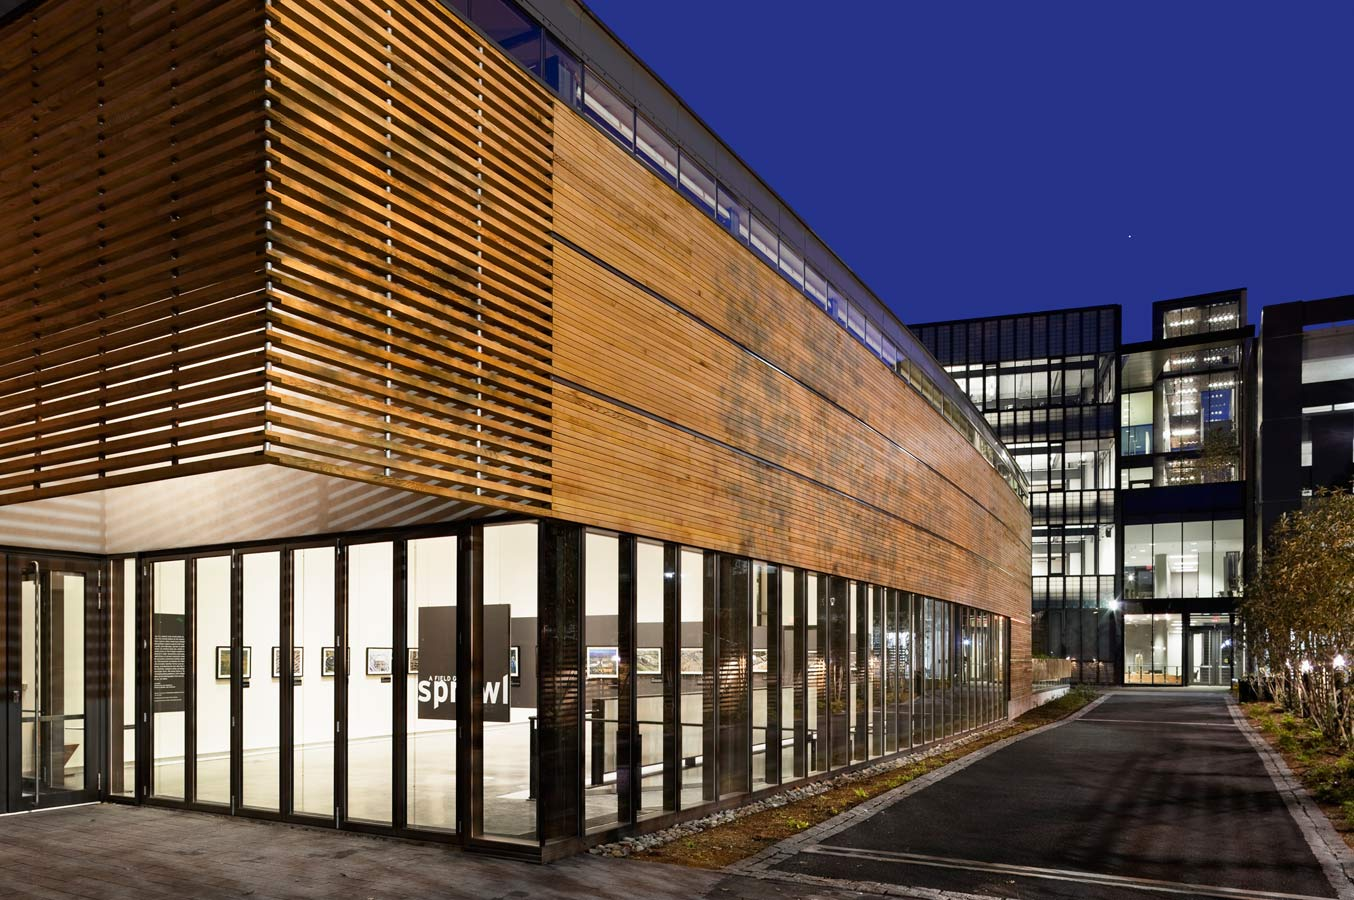 <p>The gallery was extracted from the sculpture building and placed along Edgewood Avenue to engage with the city of New Haven at the edge of campus. The gallery building is clad in glass and reclaimed western red cedar and is designed to blend with the historic houses that line this street. <br><small>© Peter Aaron/OTTO</small></p>